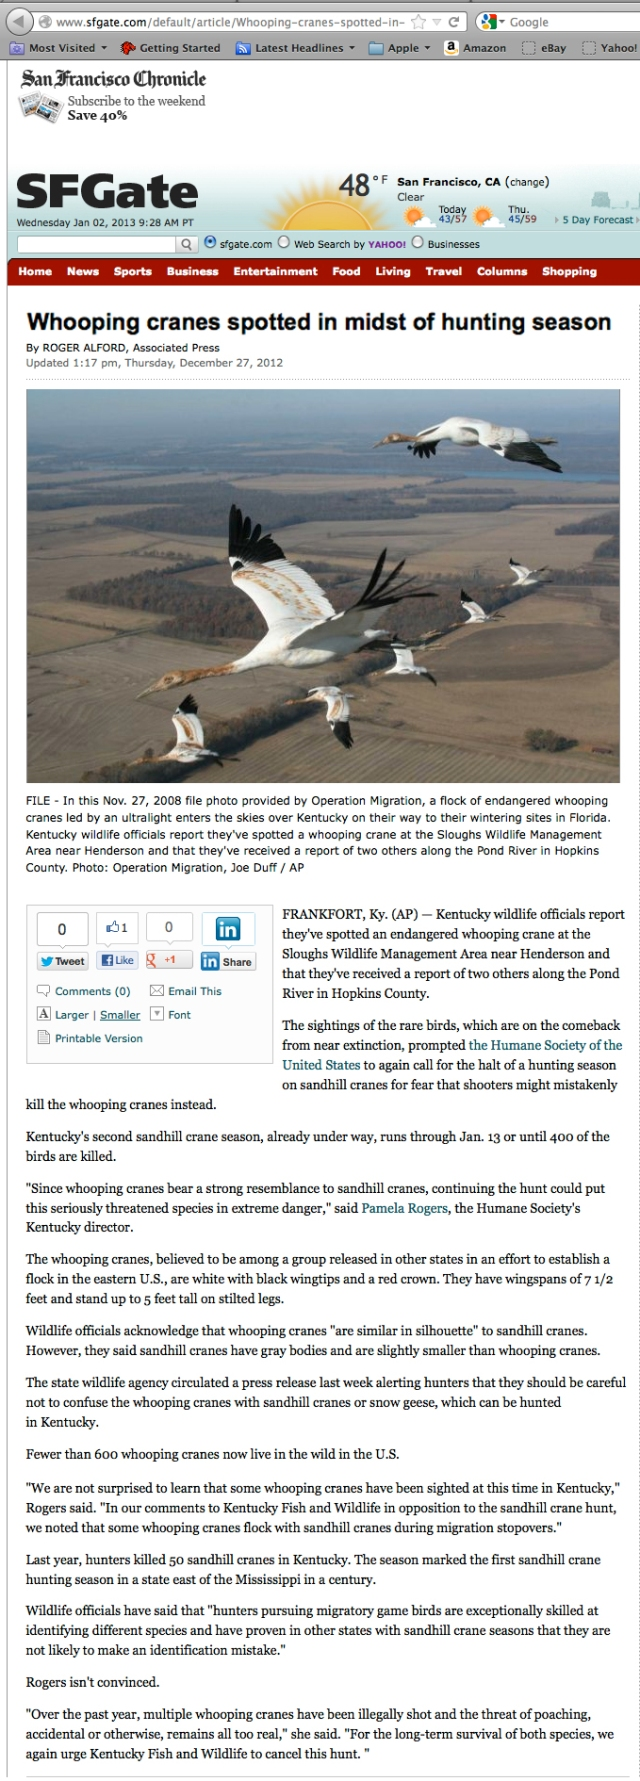 San Francisco Chronicle_27 DEC 2012_Whooping Cranes spotted in midst of hunting season